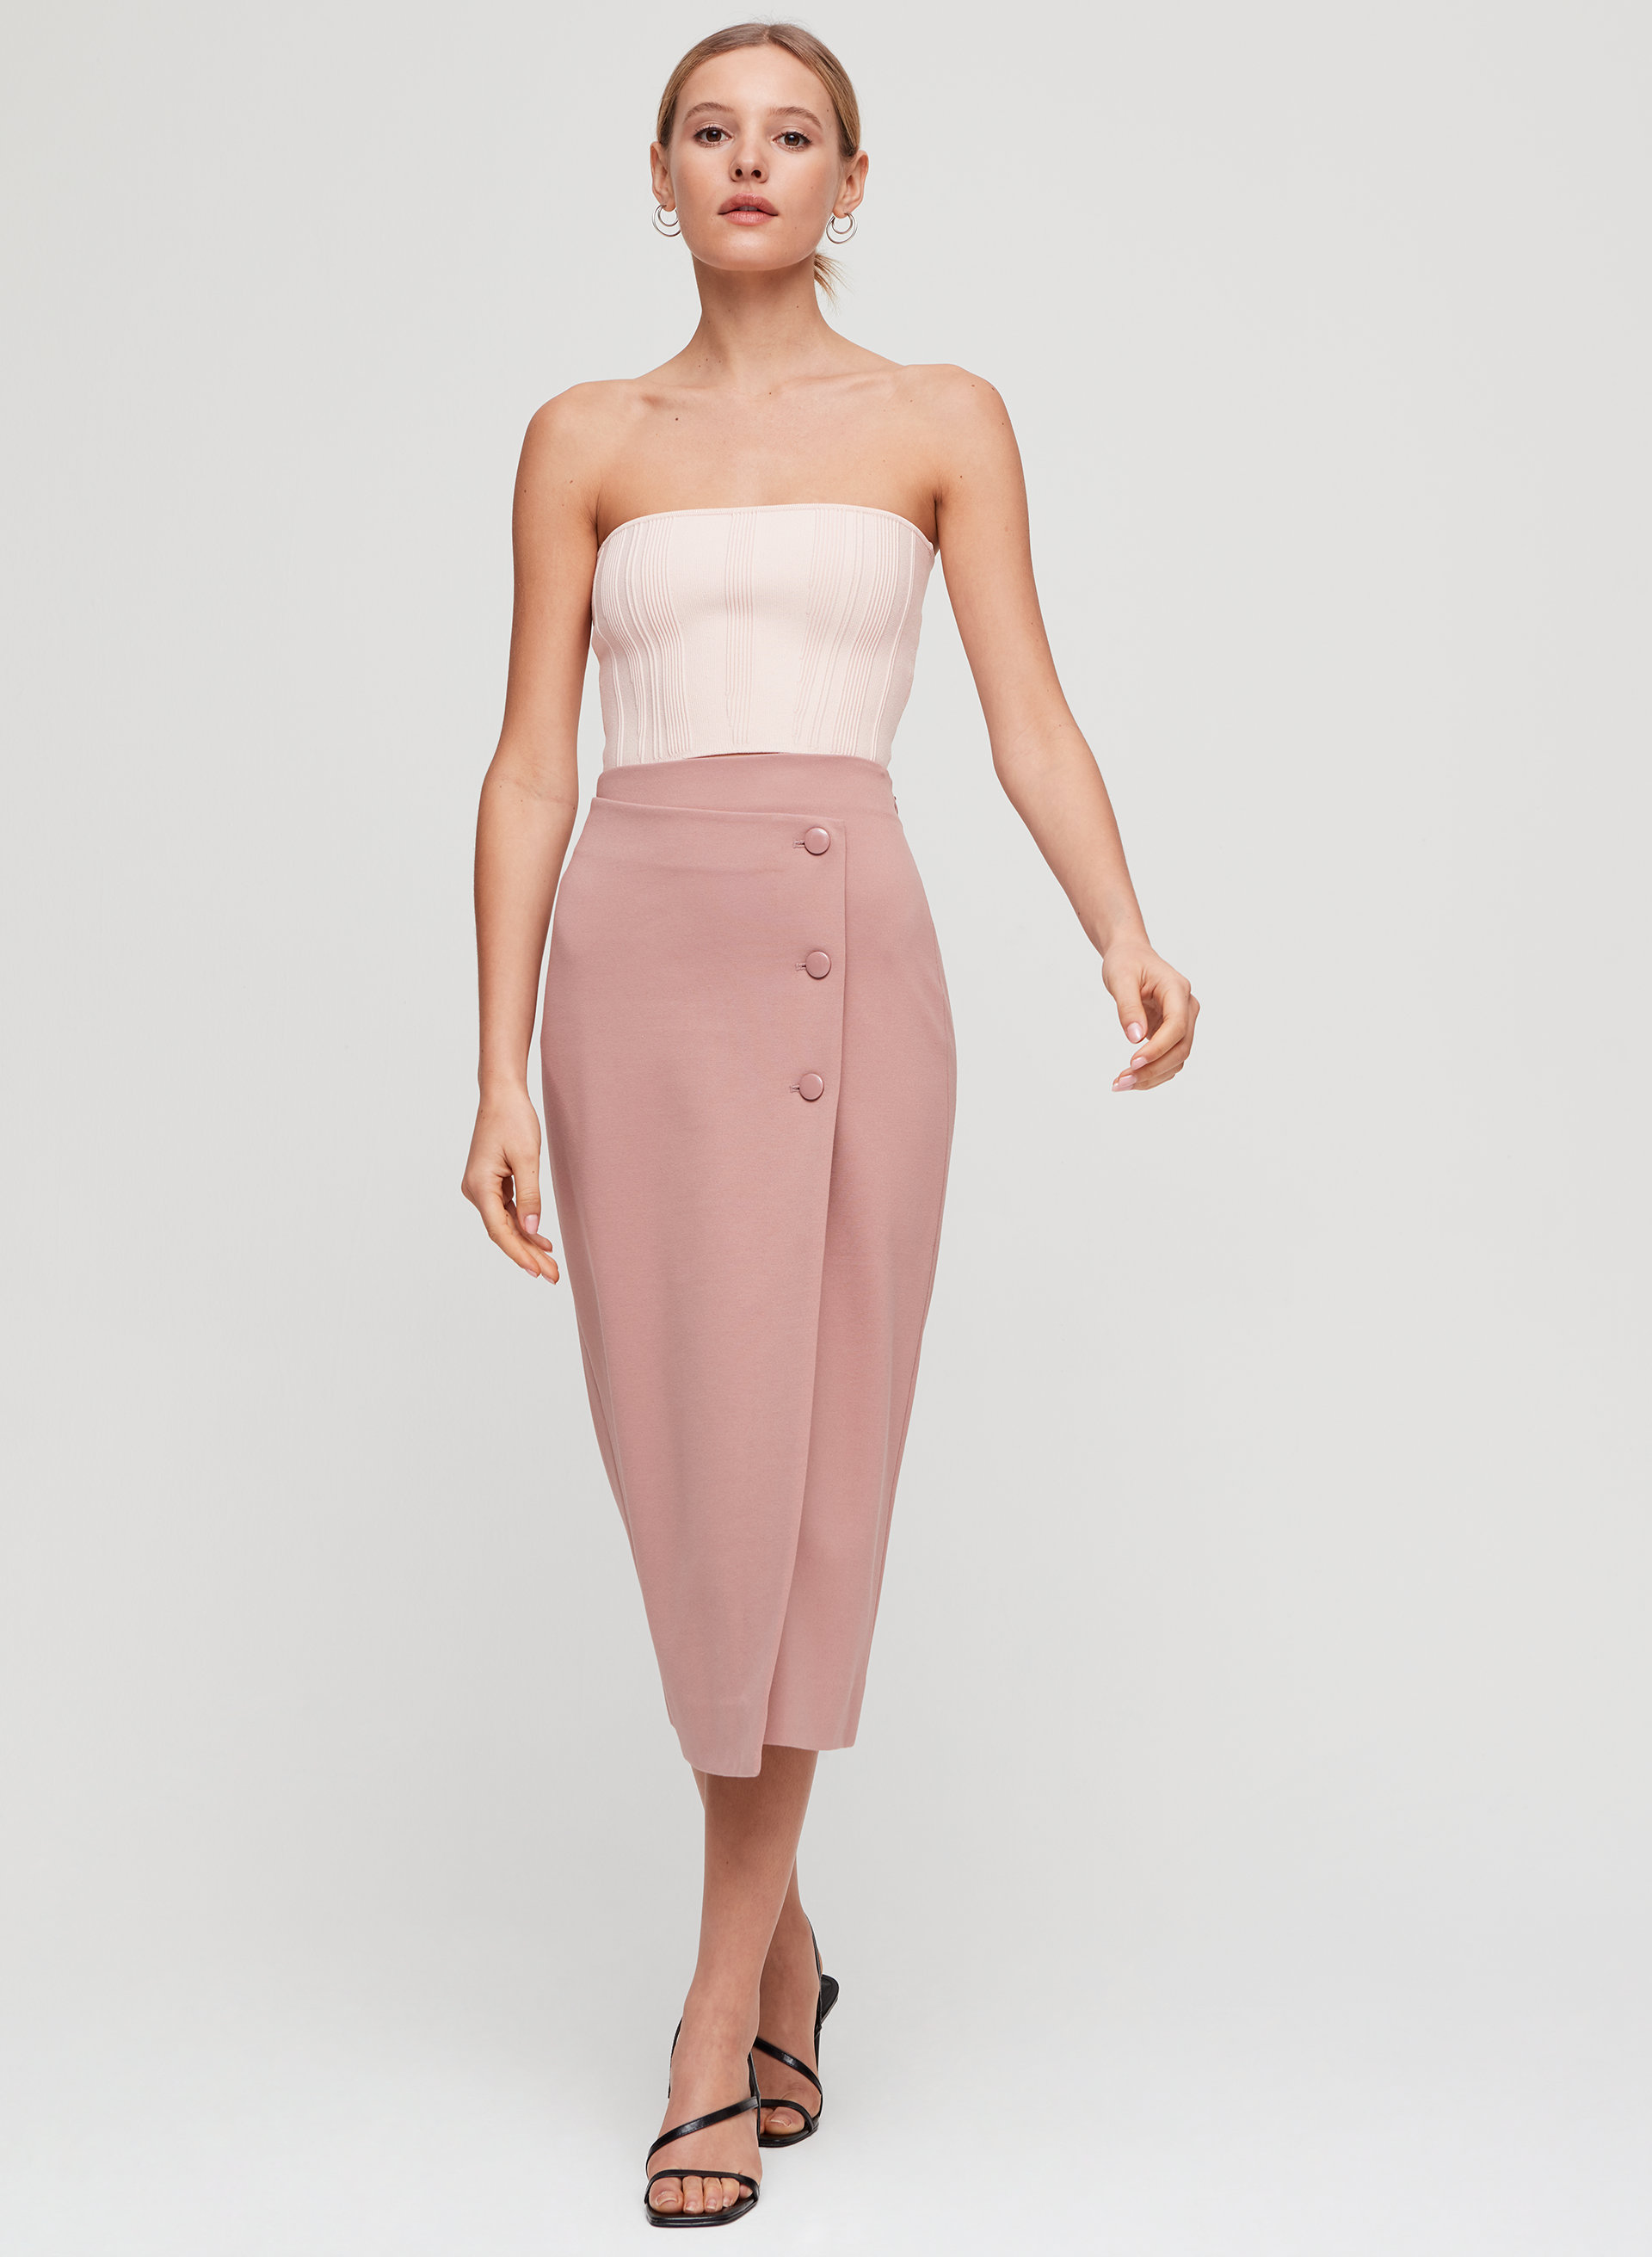 a512d86a611c ESSAMBA TUBE TOP - Ribbed, knit tube top. Styled with billy skirt ...